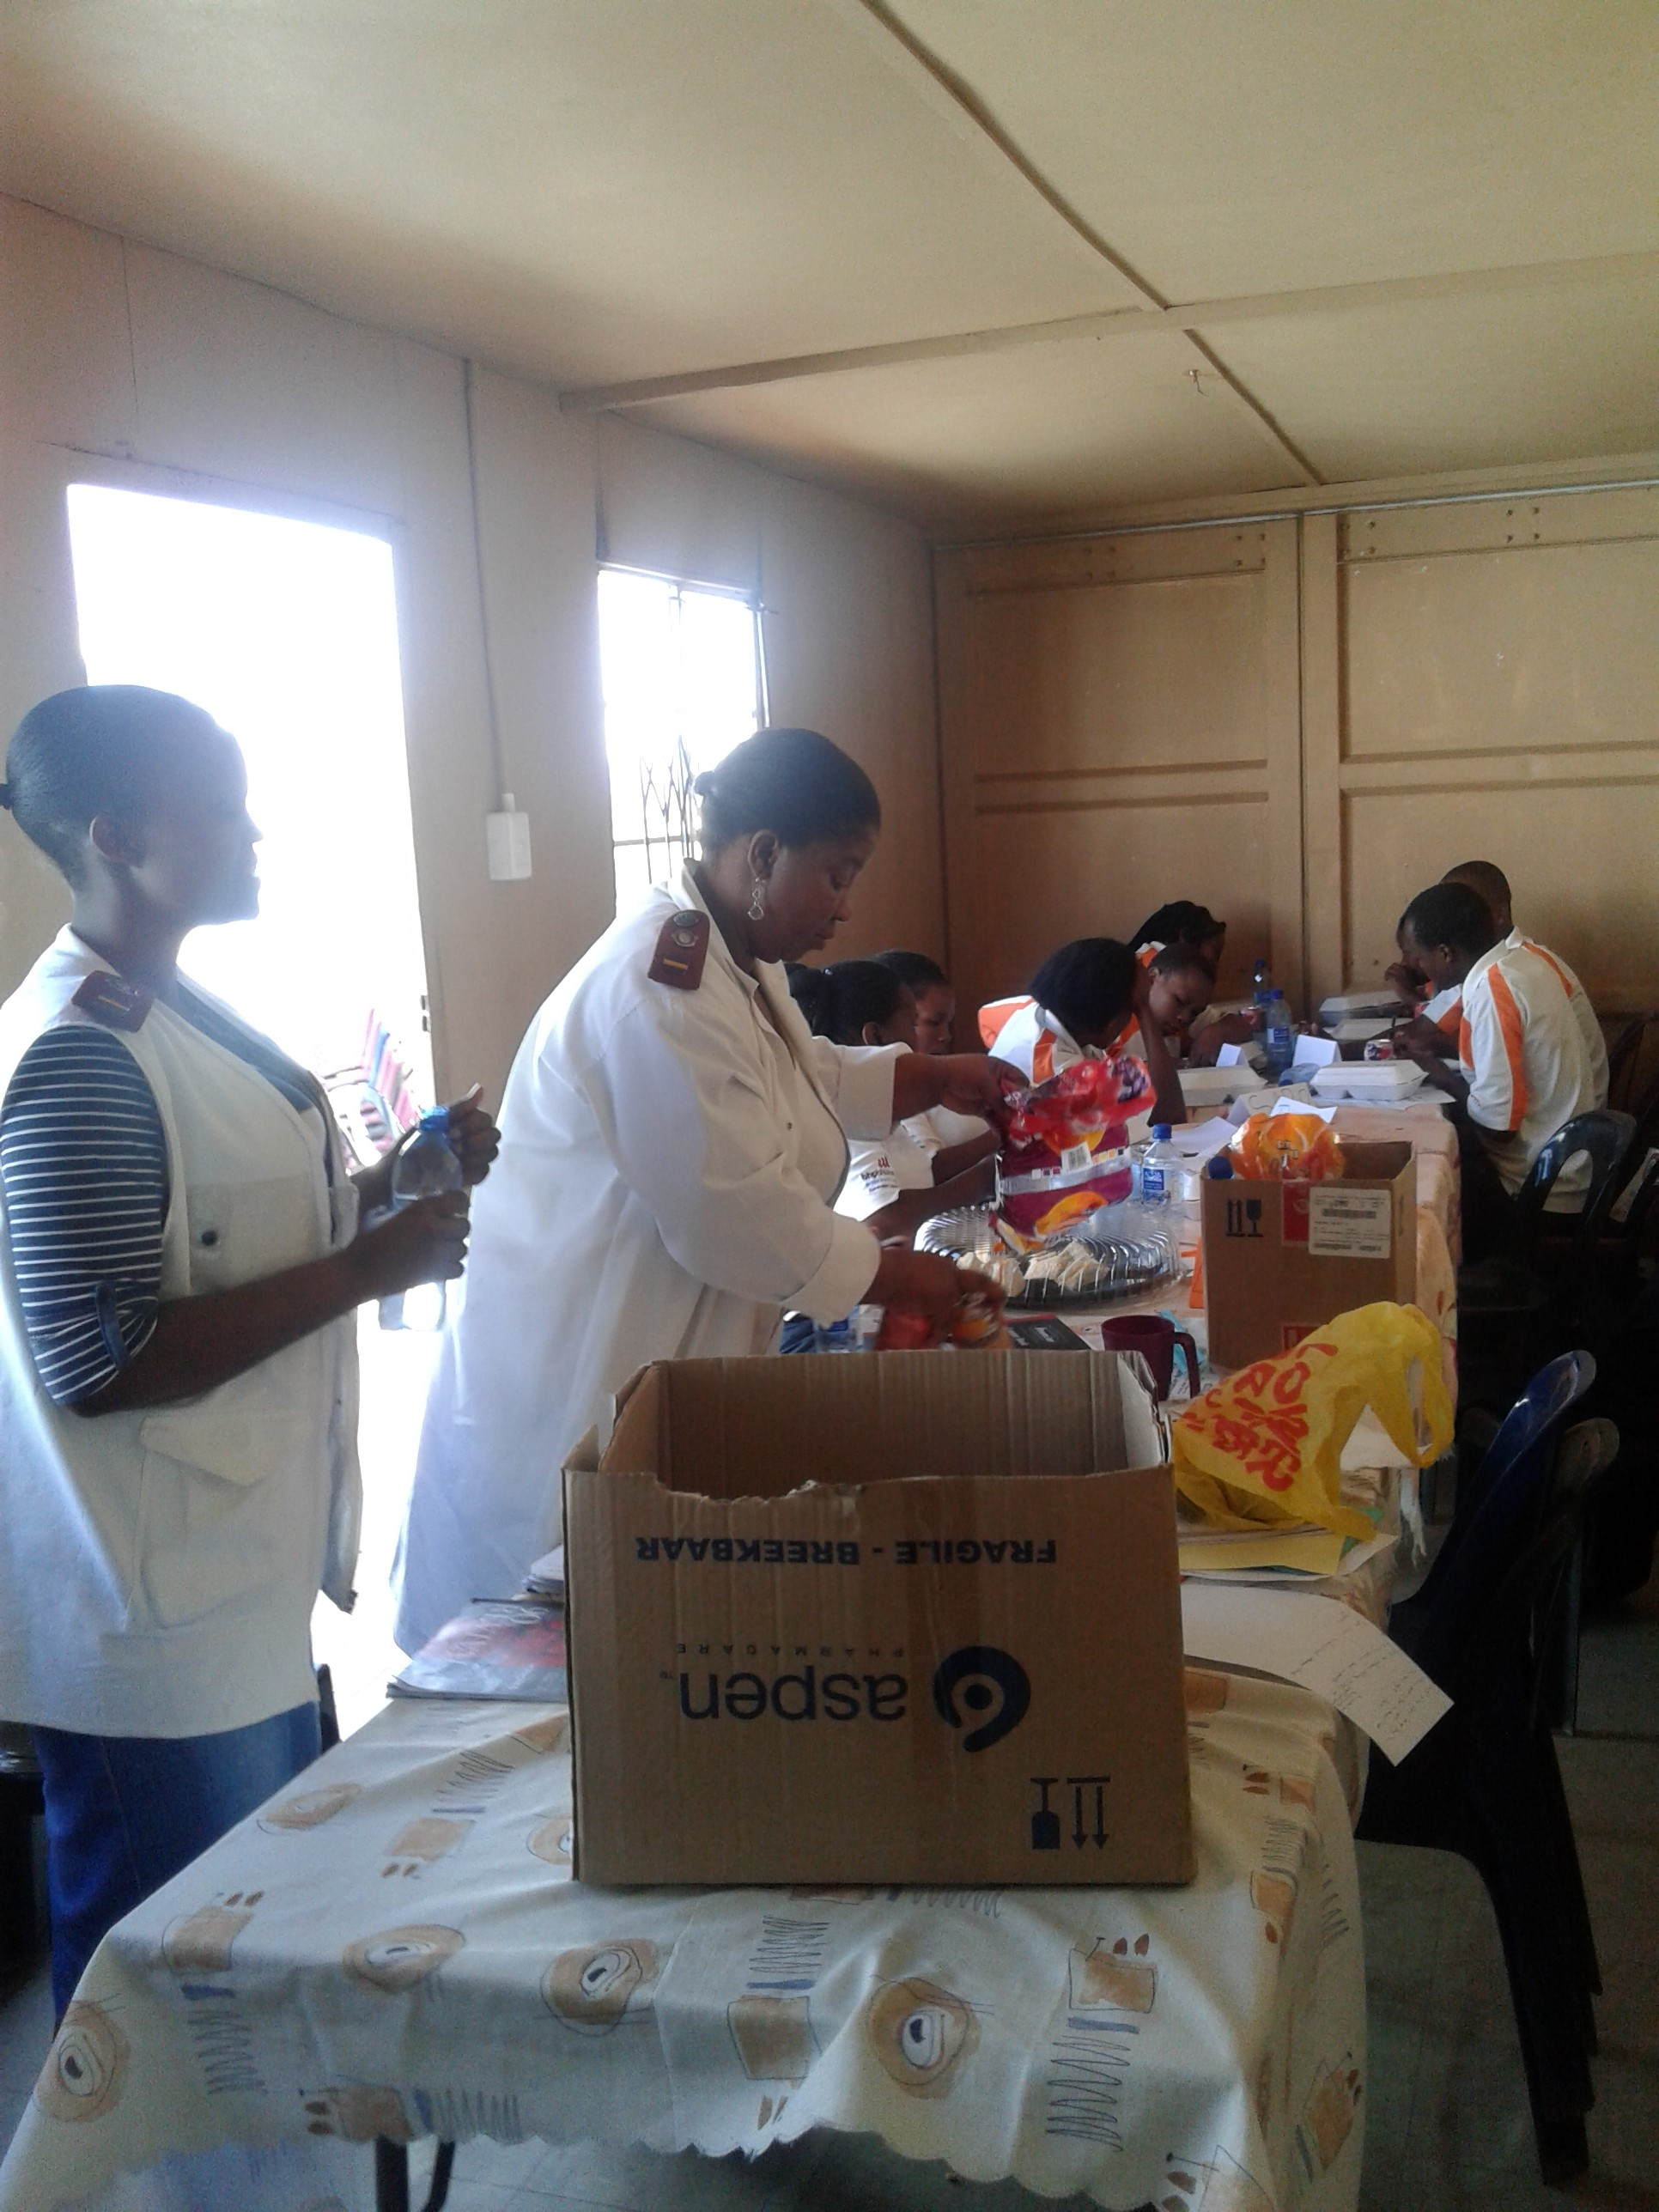 Lihle's team of volunteers received additional training from hospital medical staff